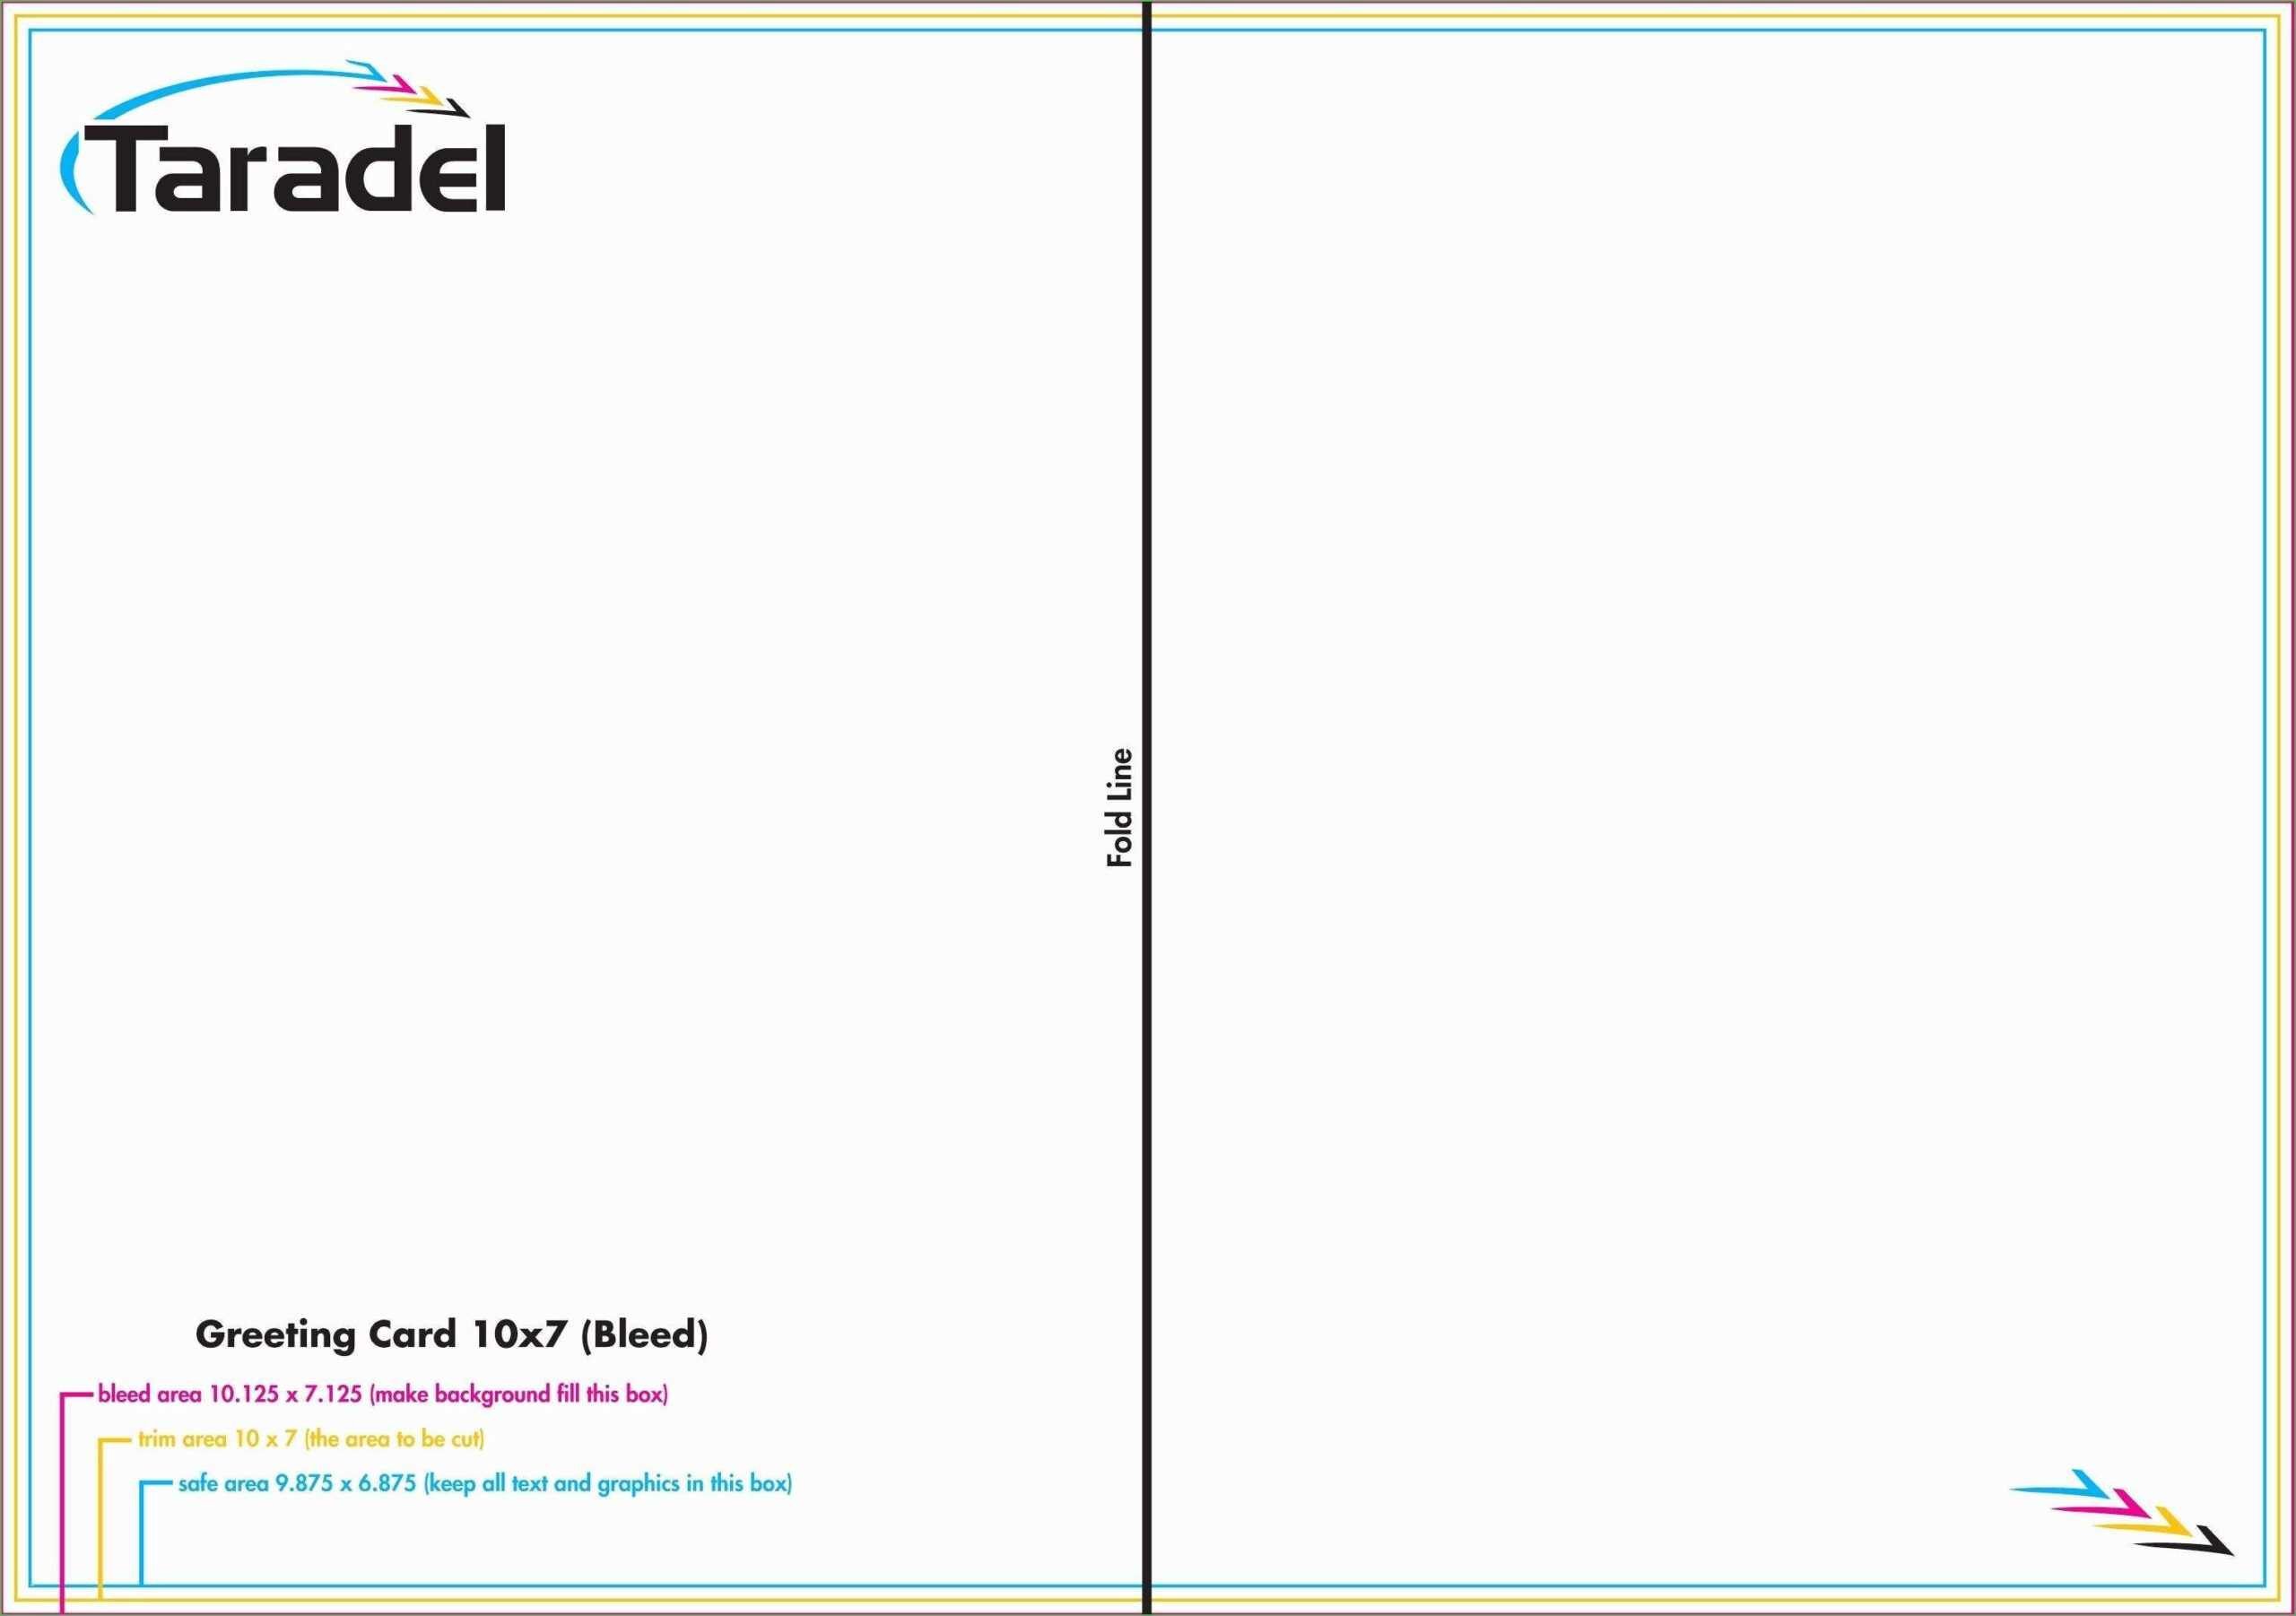 014 Greeting Card Template Photoshop Free Quarter Fold in Birthday Card Template Indesign